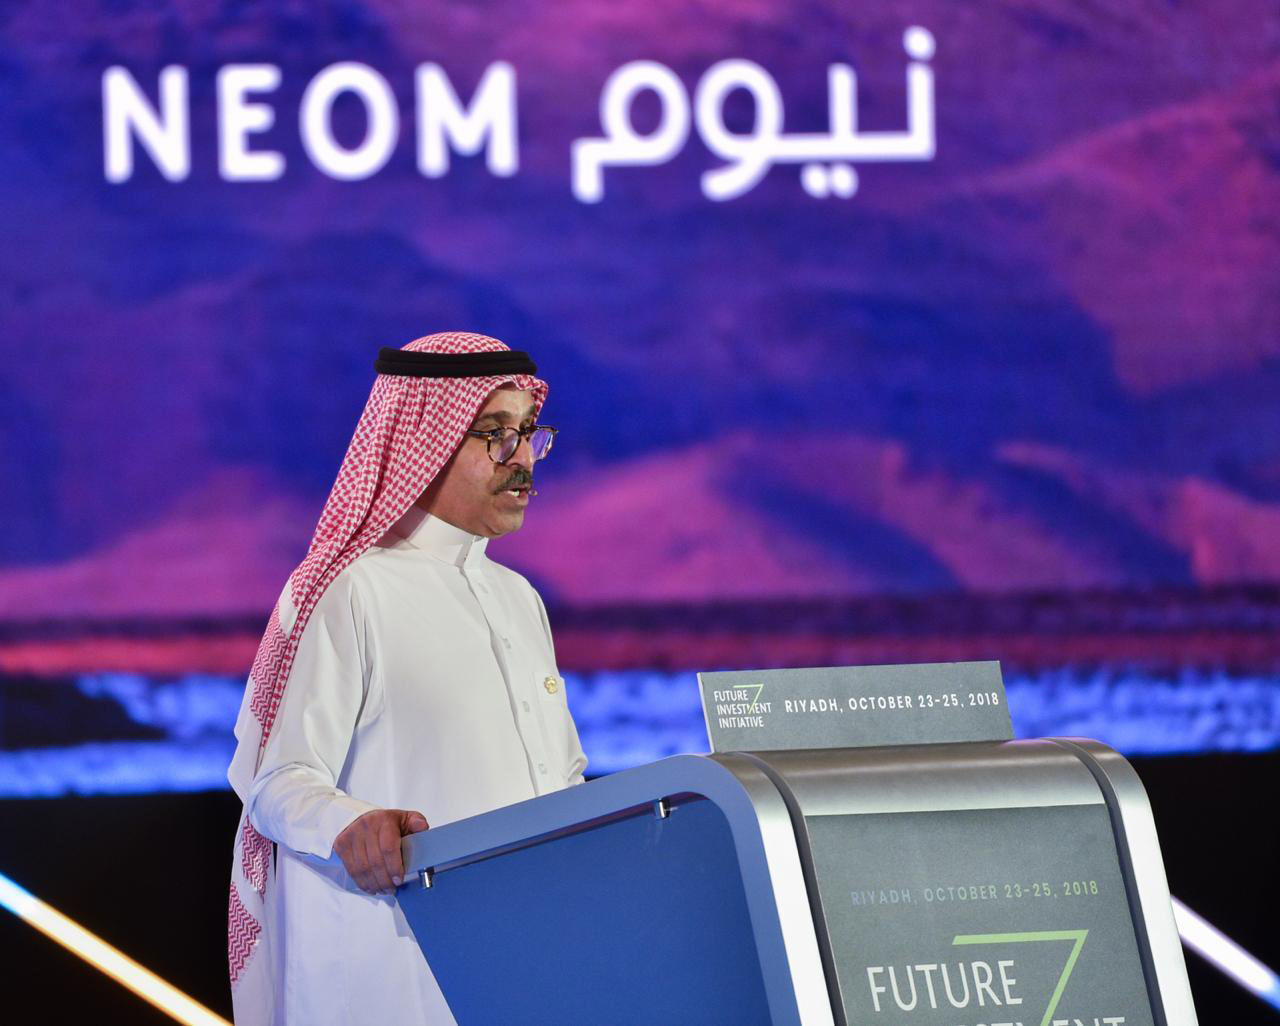 Image of man speaking at podium with purple sign behind him that says NEOM in English and Arabic